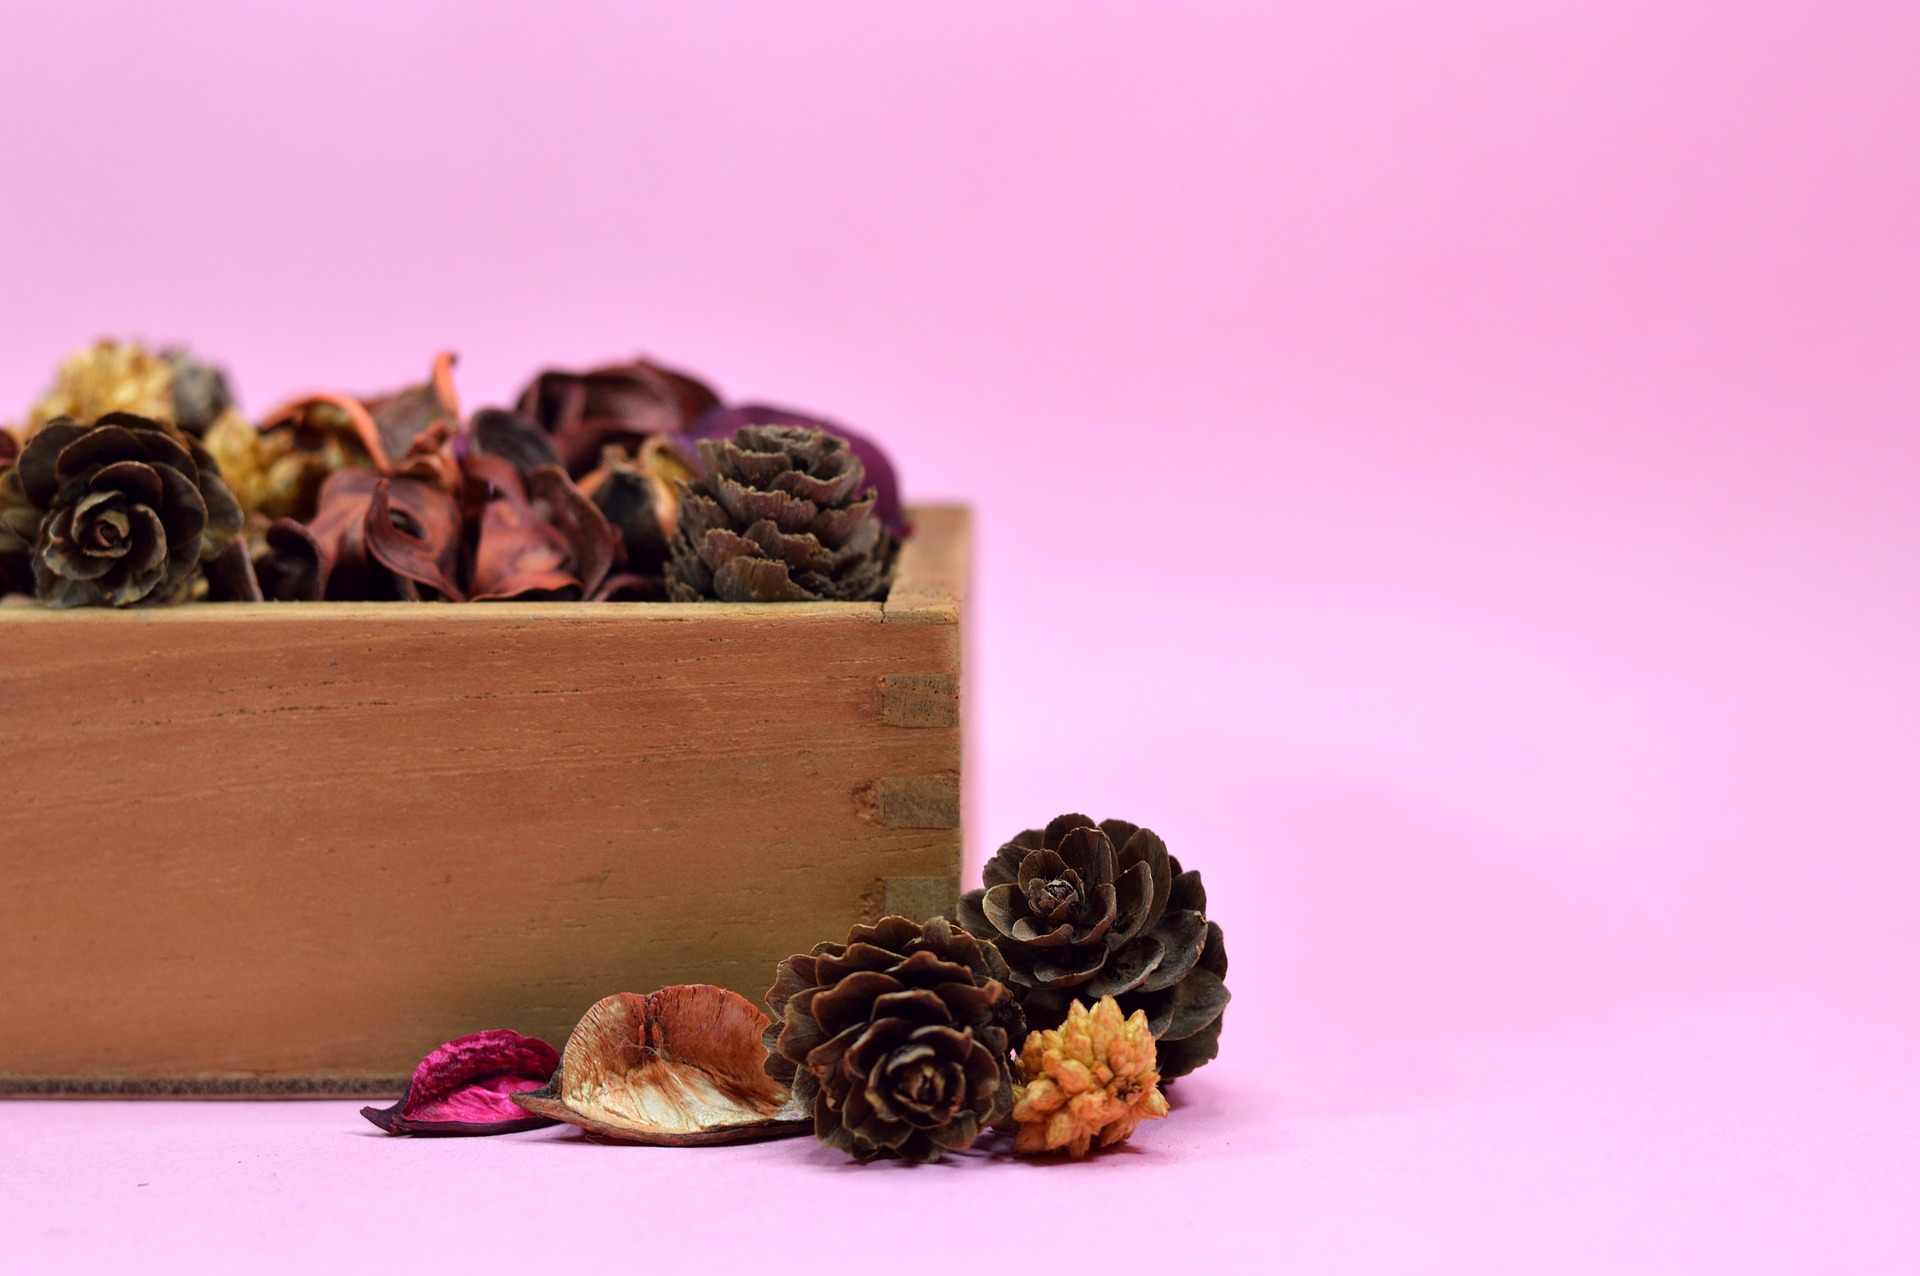 DIY : comment réaliser un pot pourri ?